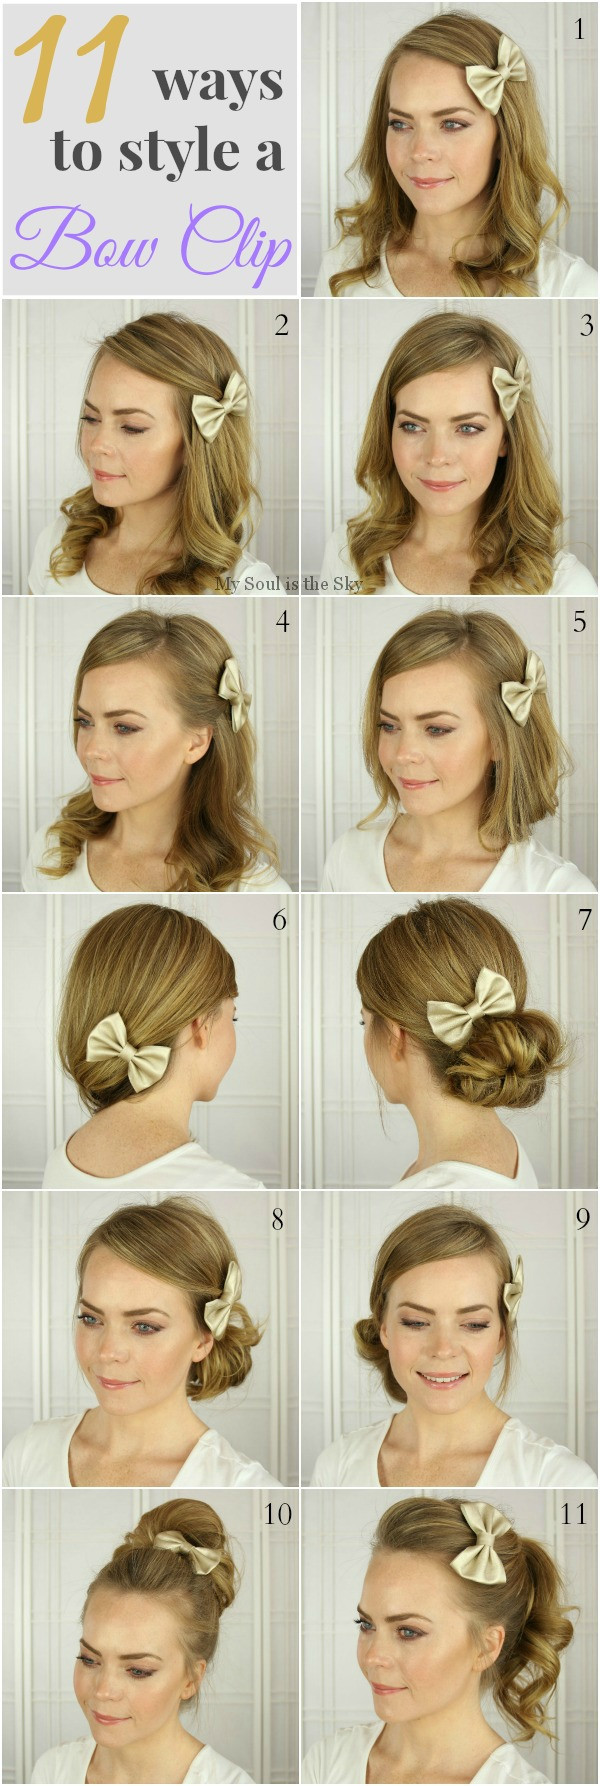 Best ideas about Cute Hairstyles With Bows . Save or Pin hairstyles with a bow Now.